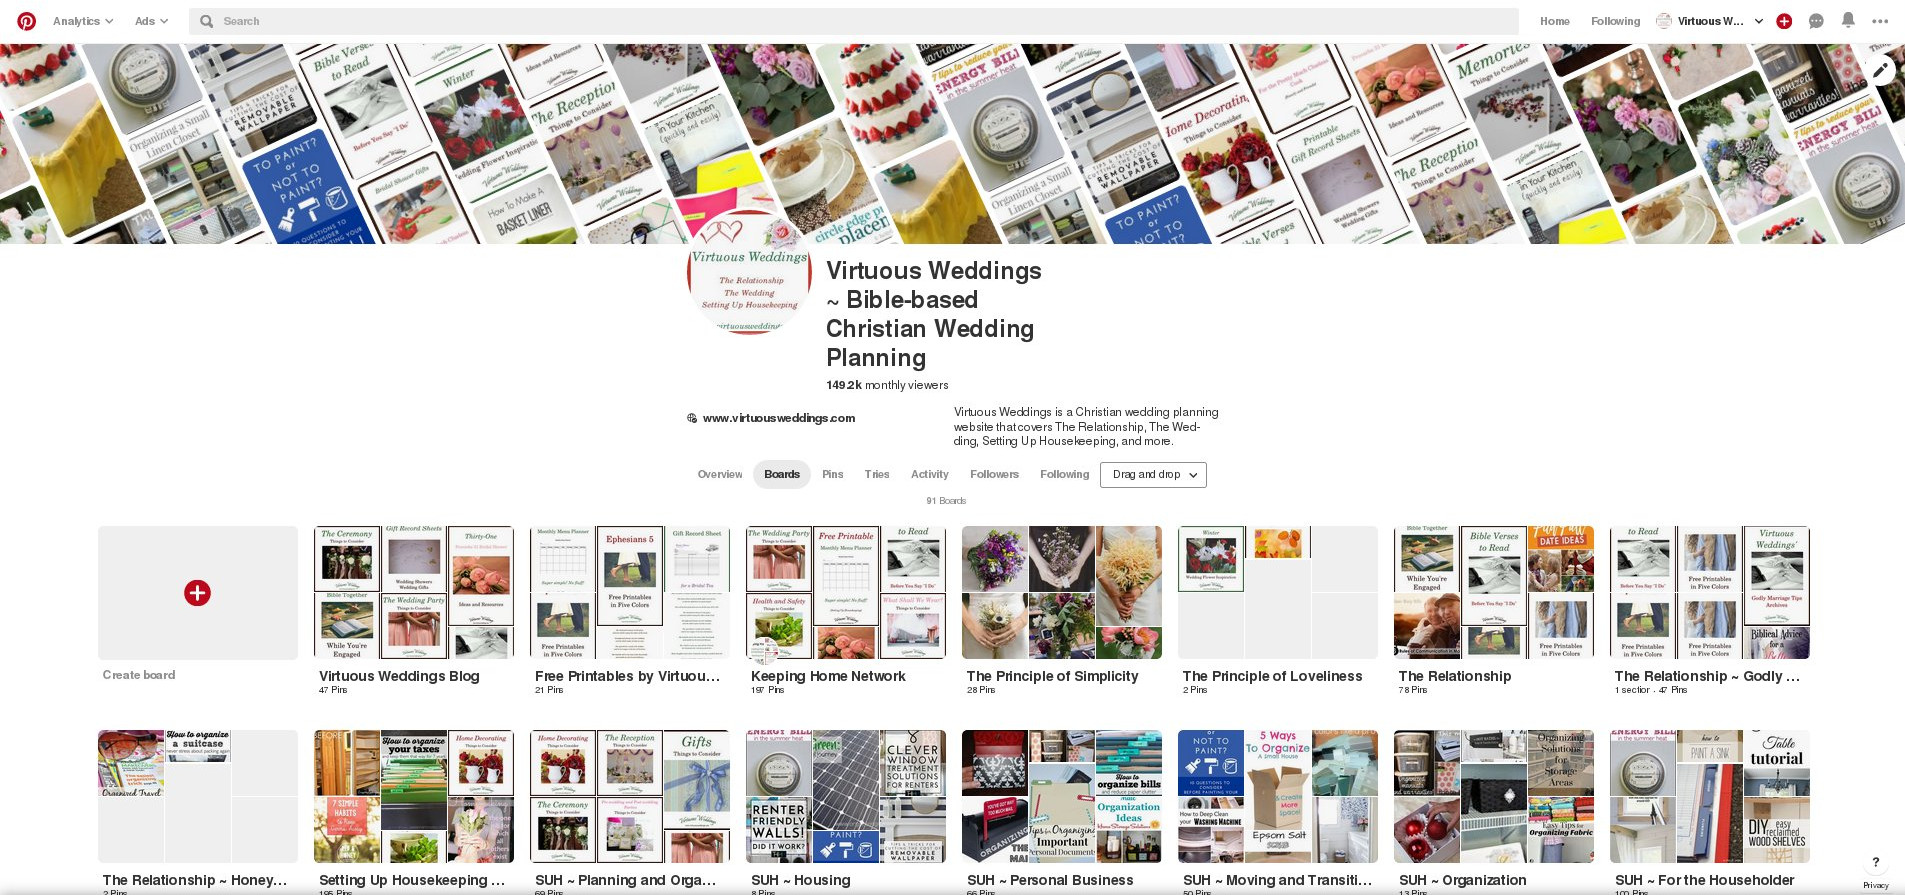 Screenshot of Virtuous Weddings' Pinterest boards